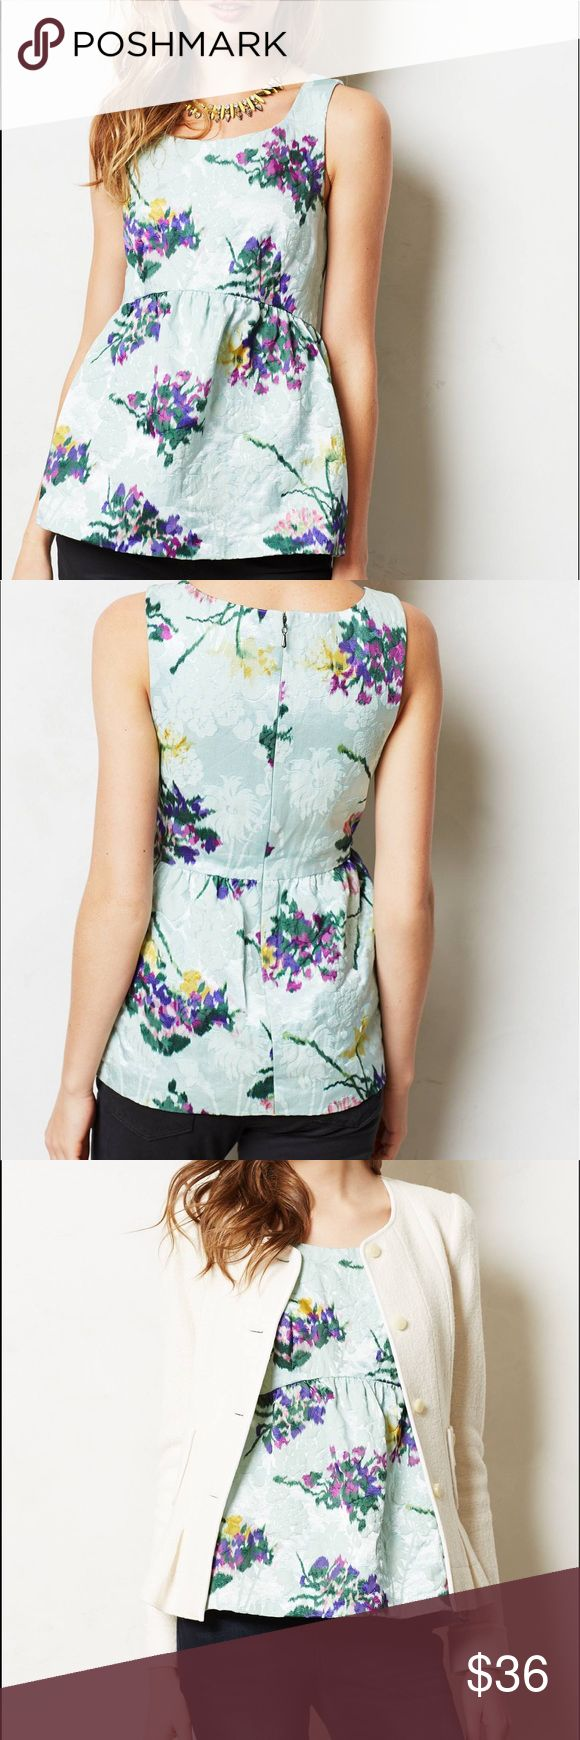 Anthropologie Leifsdotter Brocade Peplum Top Gorgeous, never worn Anthro top that's perfect for a special occasion or a night out! Beautiful brocade floral pattern. The top is lined, with bra strap holders, and a hidden back zip. Anthropologie Tops